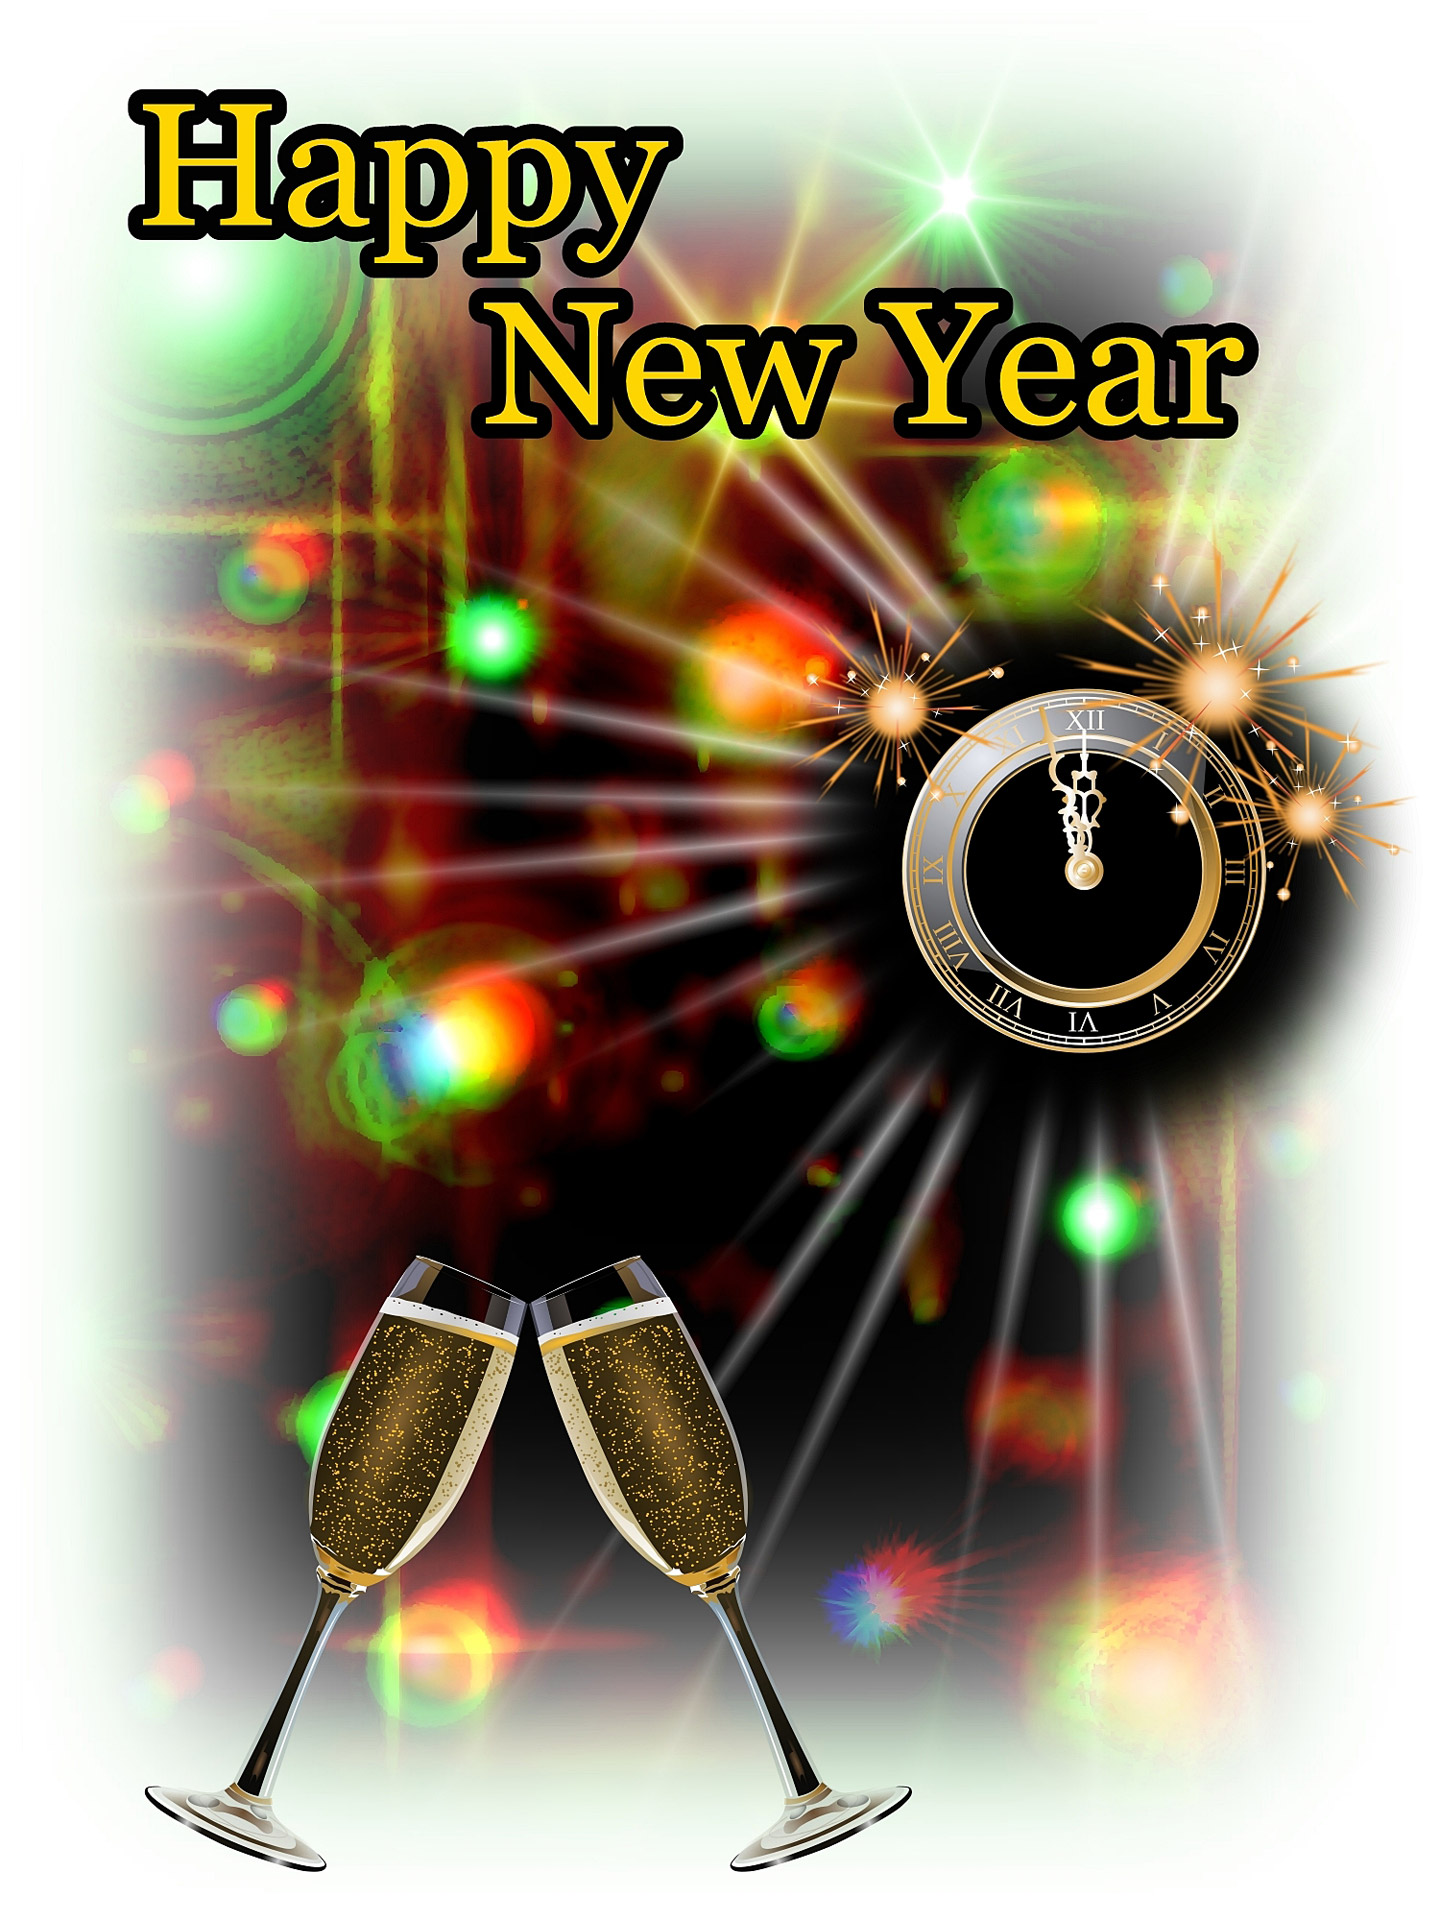 Happy New Year 2 Free Stock Photo  Public Domain Pictures